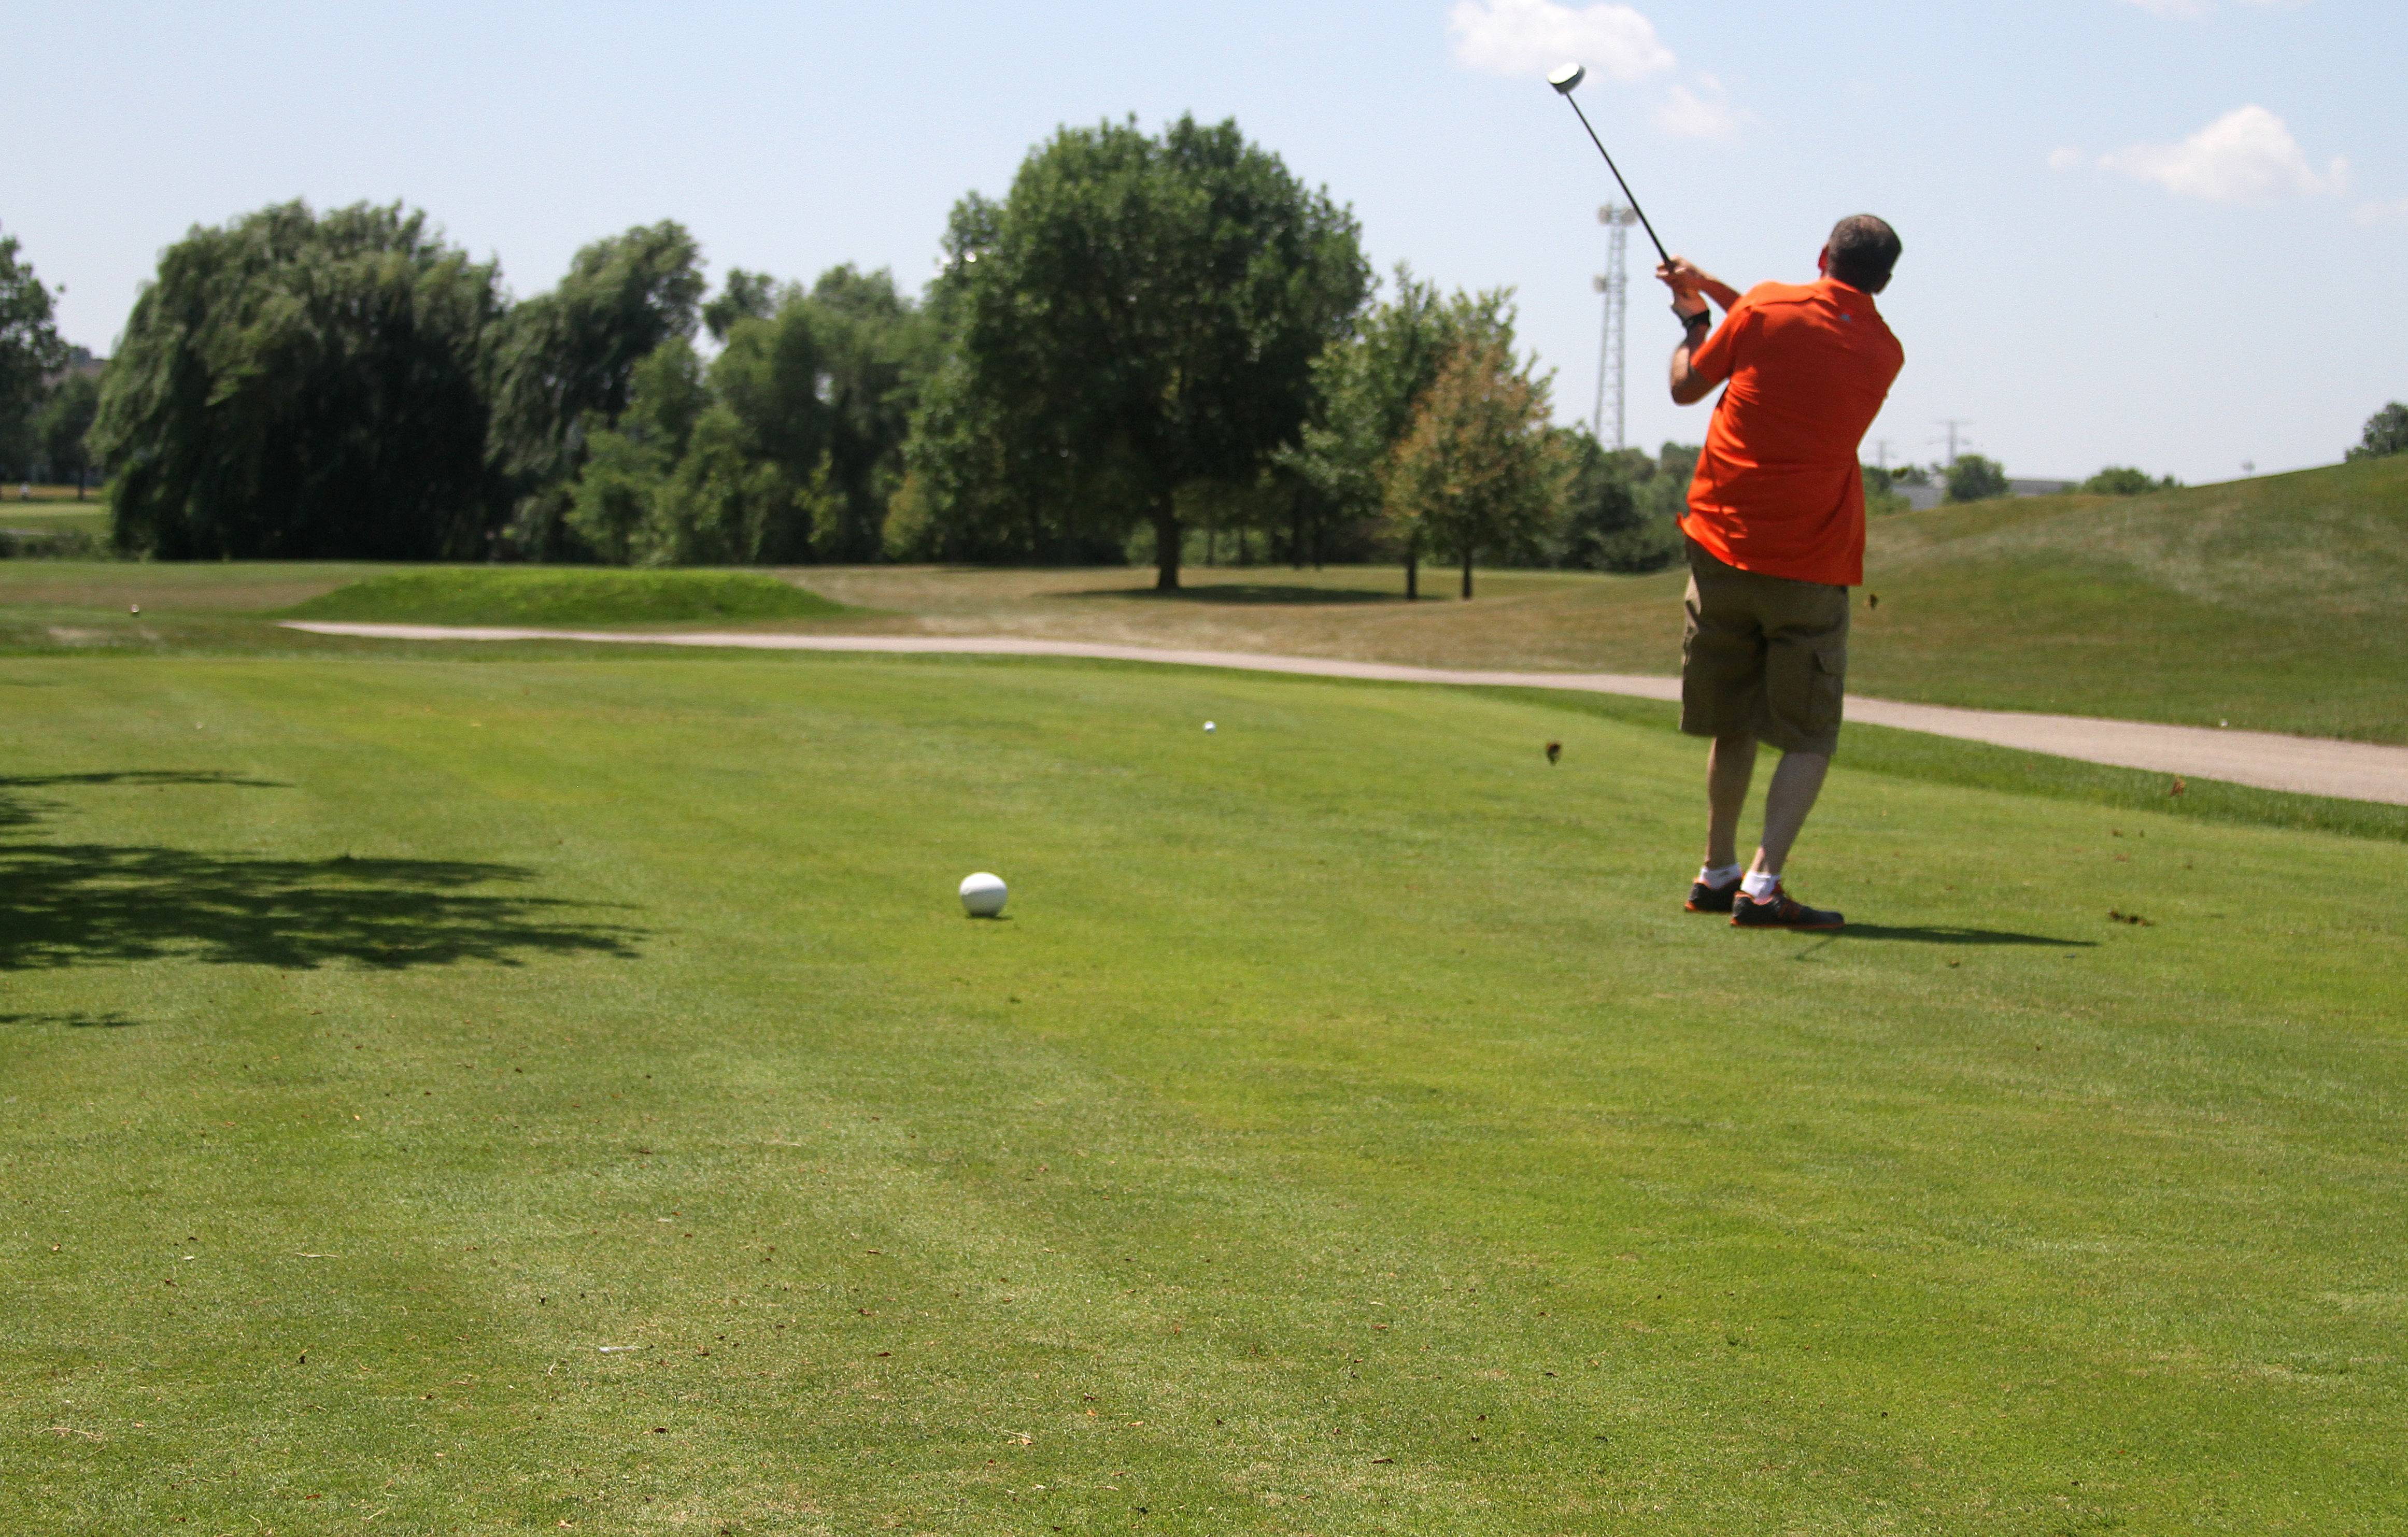 Suburban golf courses losing money for taxpayers